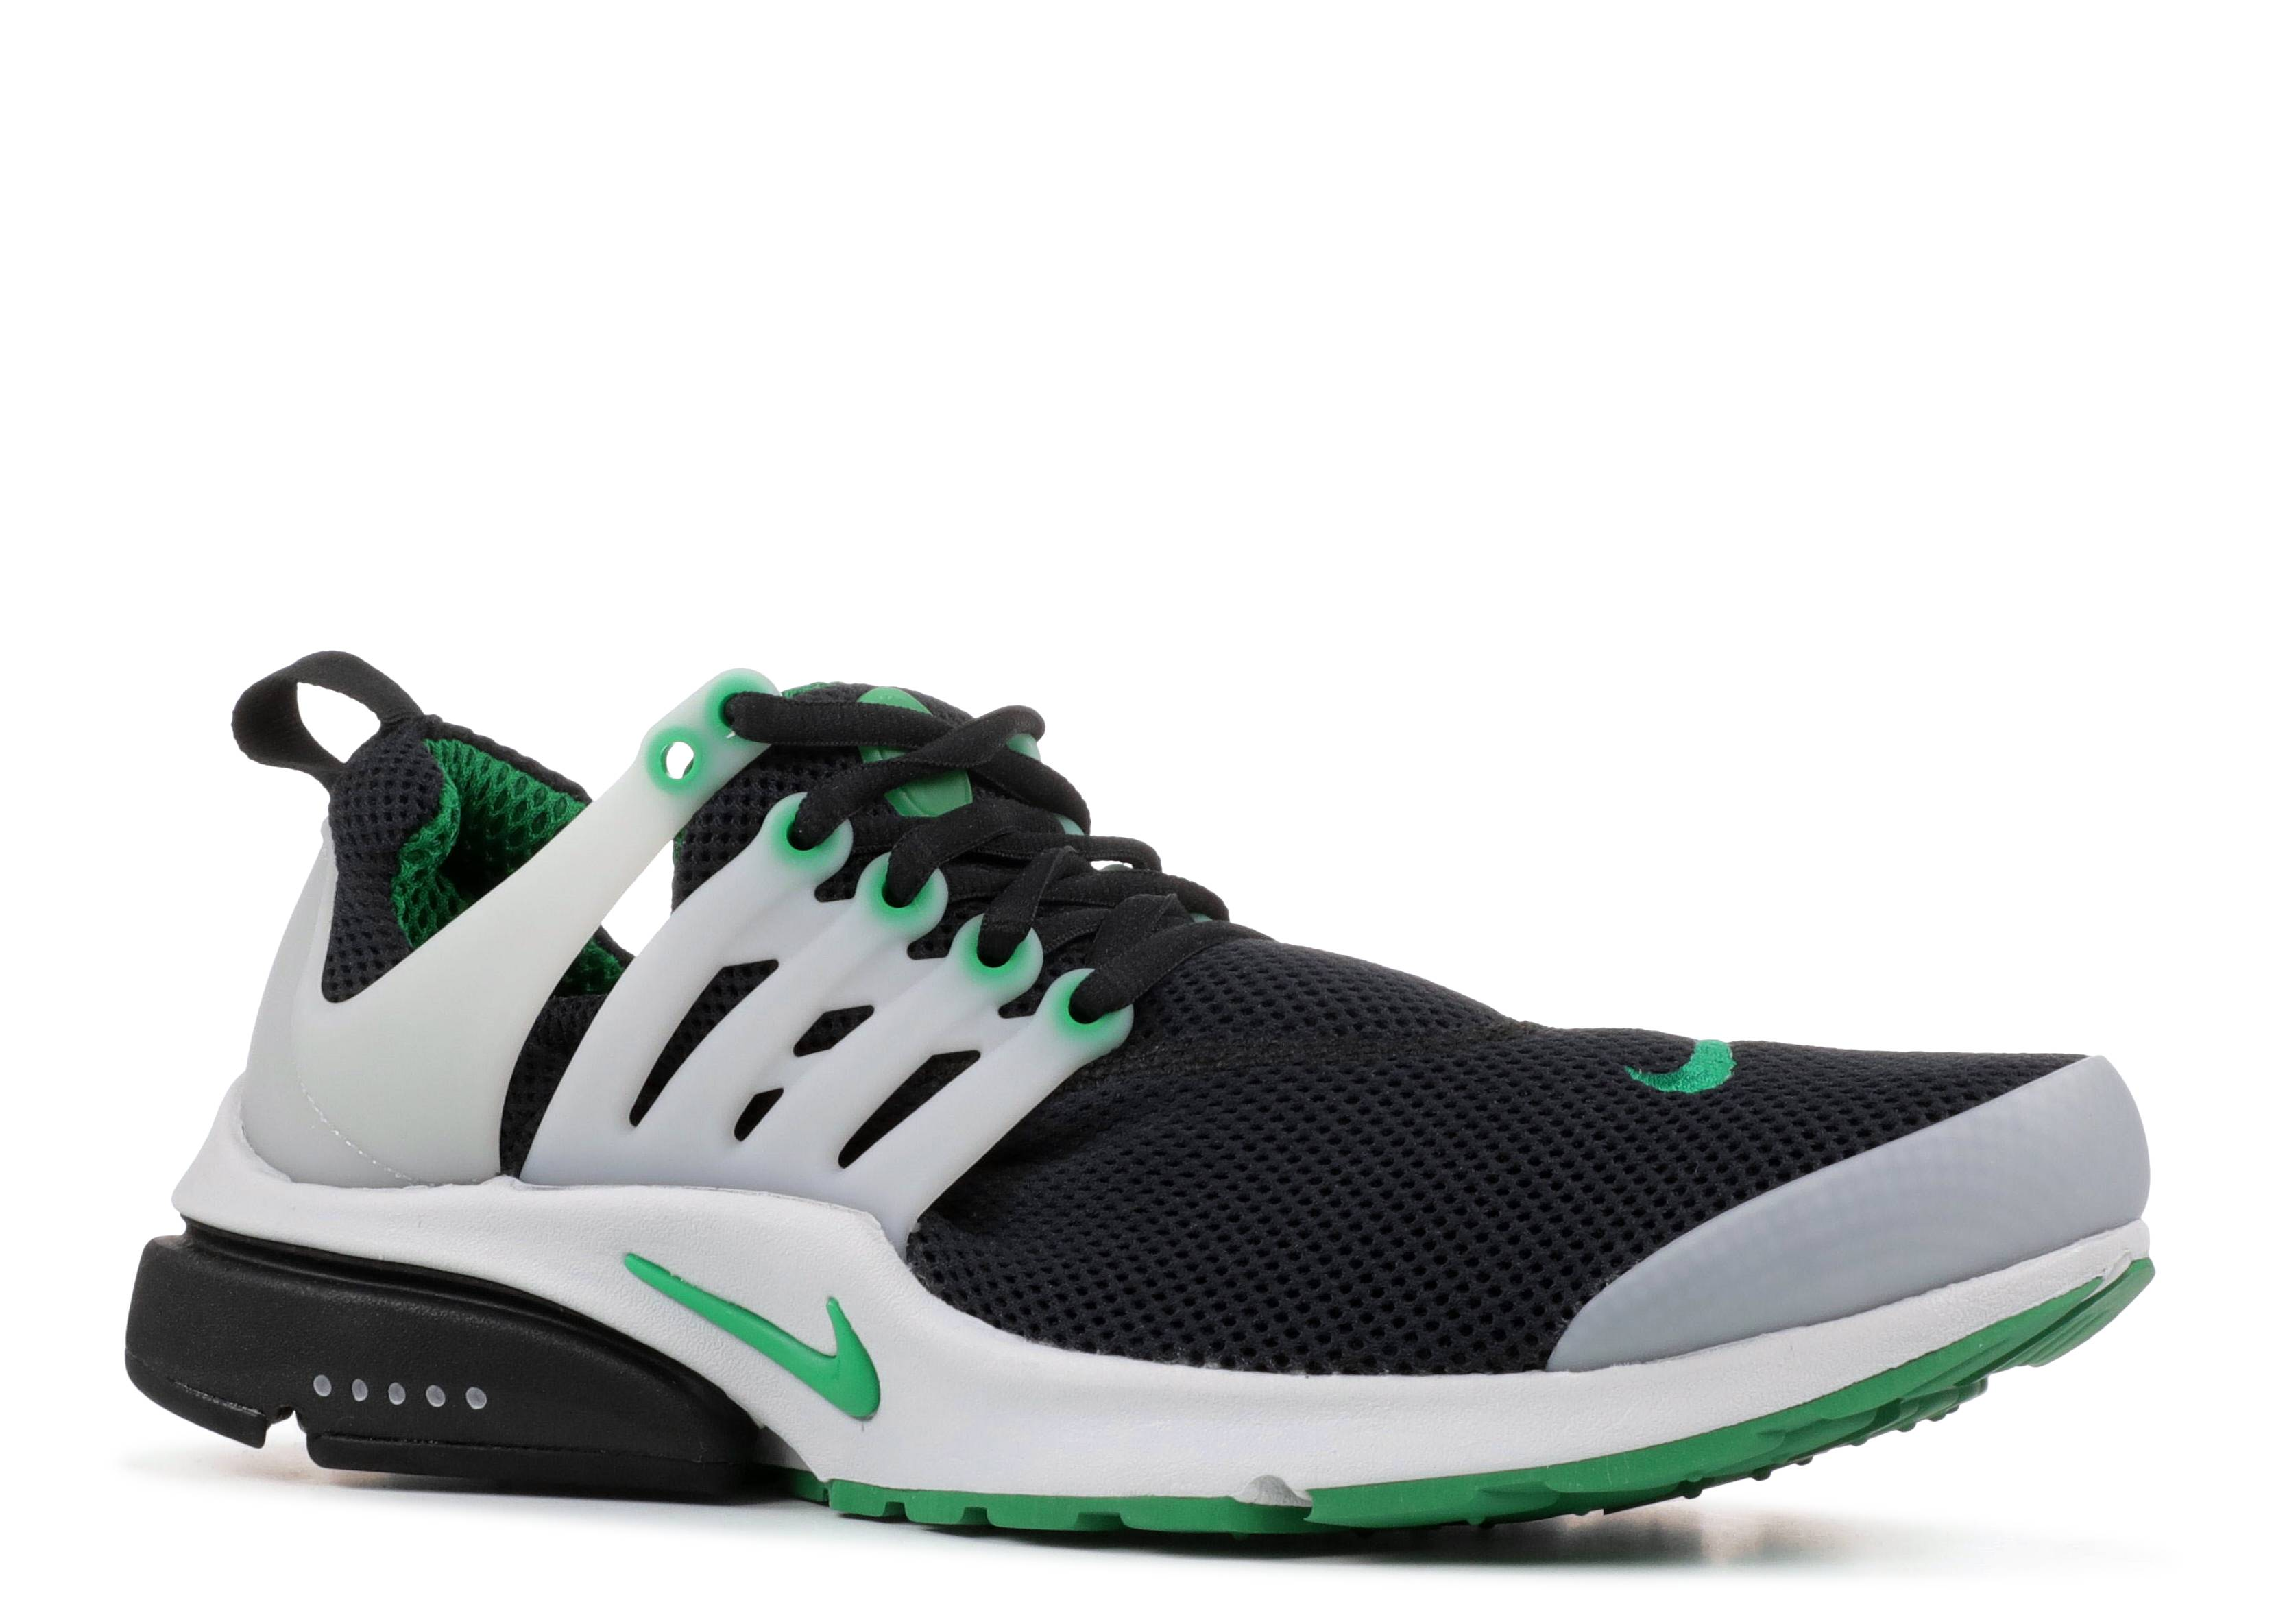 835b78243e3 Nike Air Presto Essential - Nike - 848187 003 - black pine green-neutral  grey